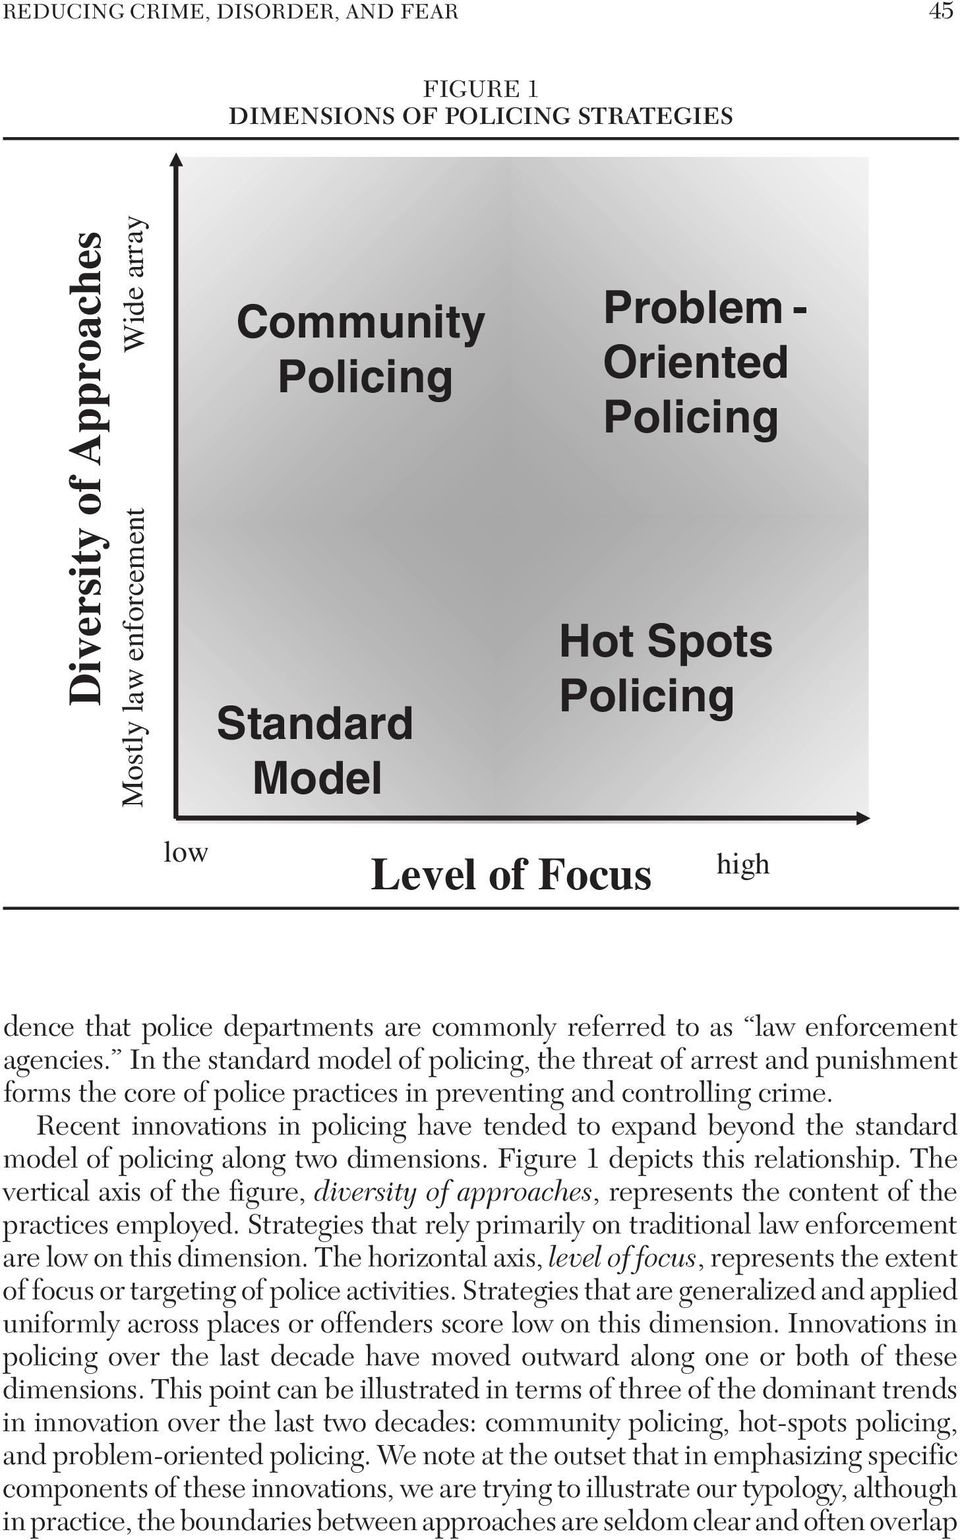 In the standard model of policing, the threat of arrest and punishment forms the core of police practices in preventing and controlling crime.